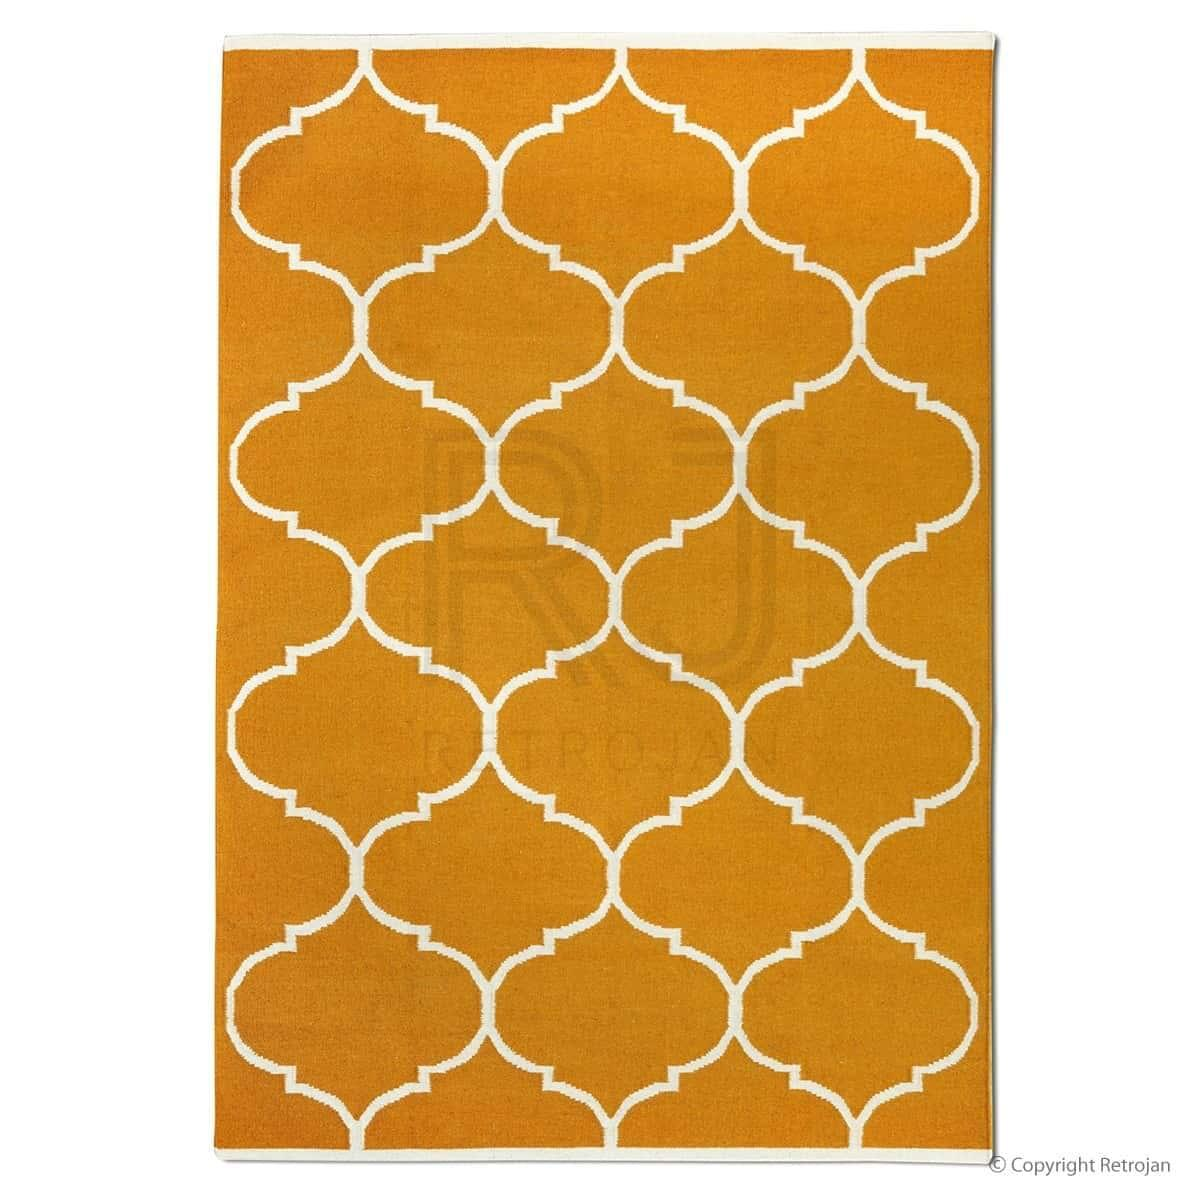 Savoy Designer Rug - Orange